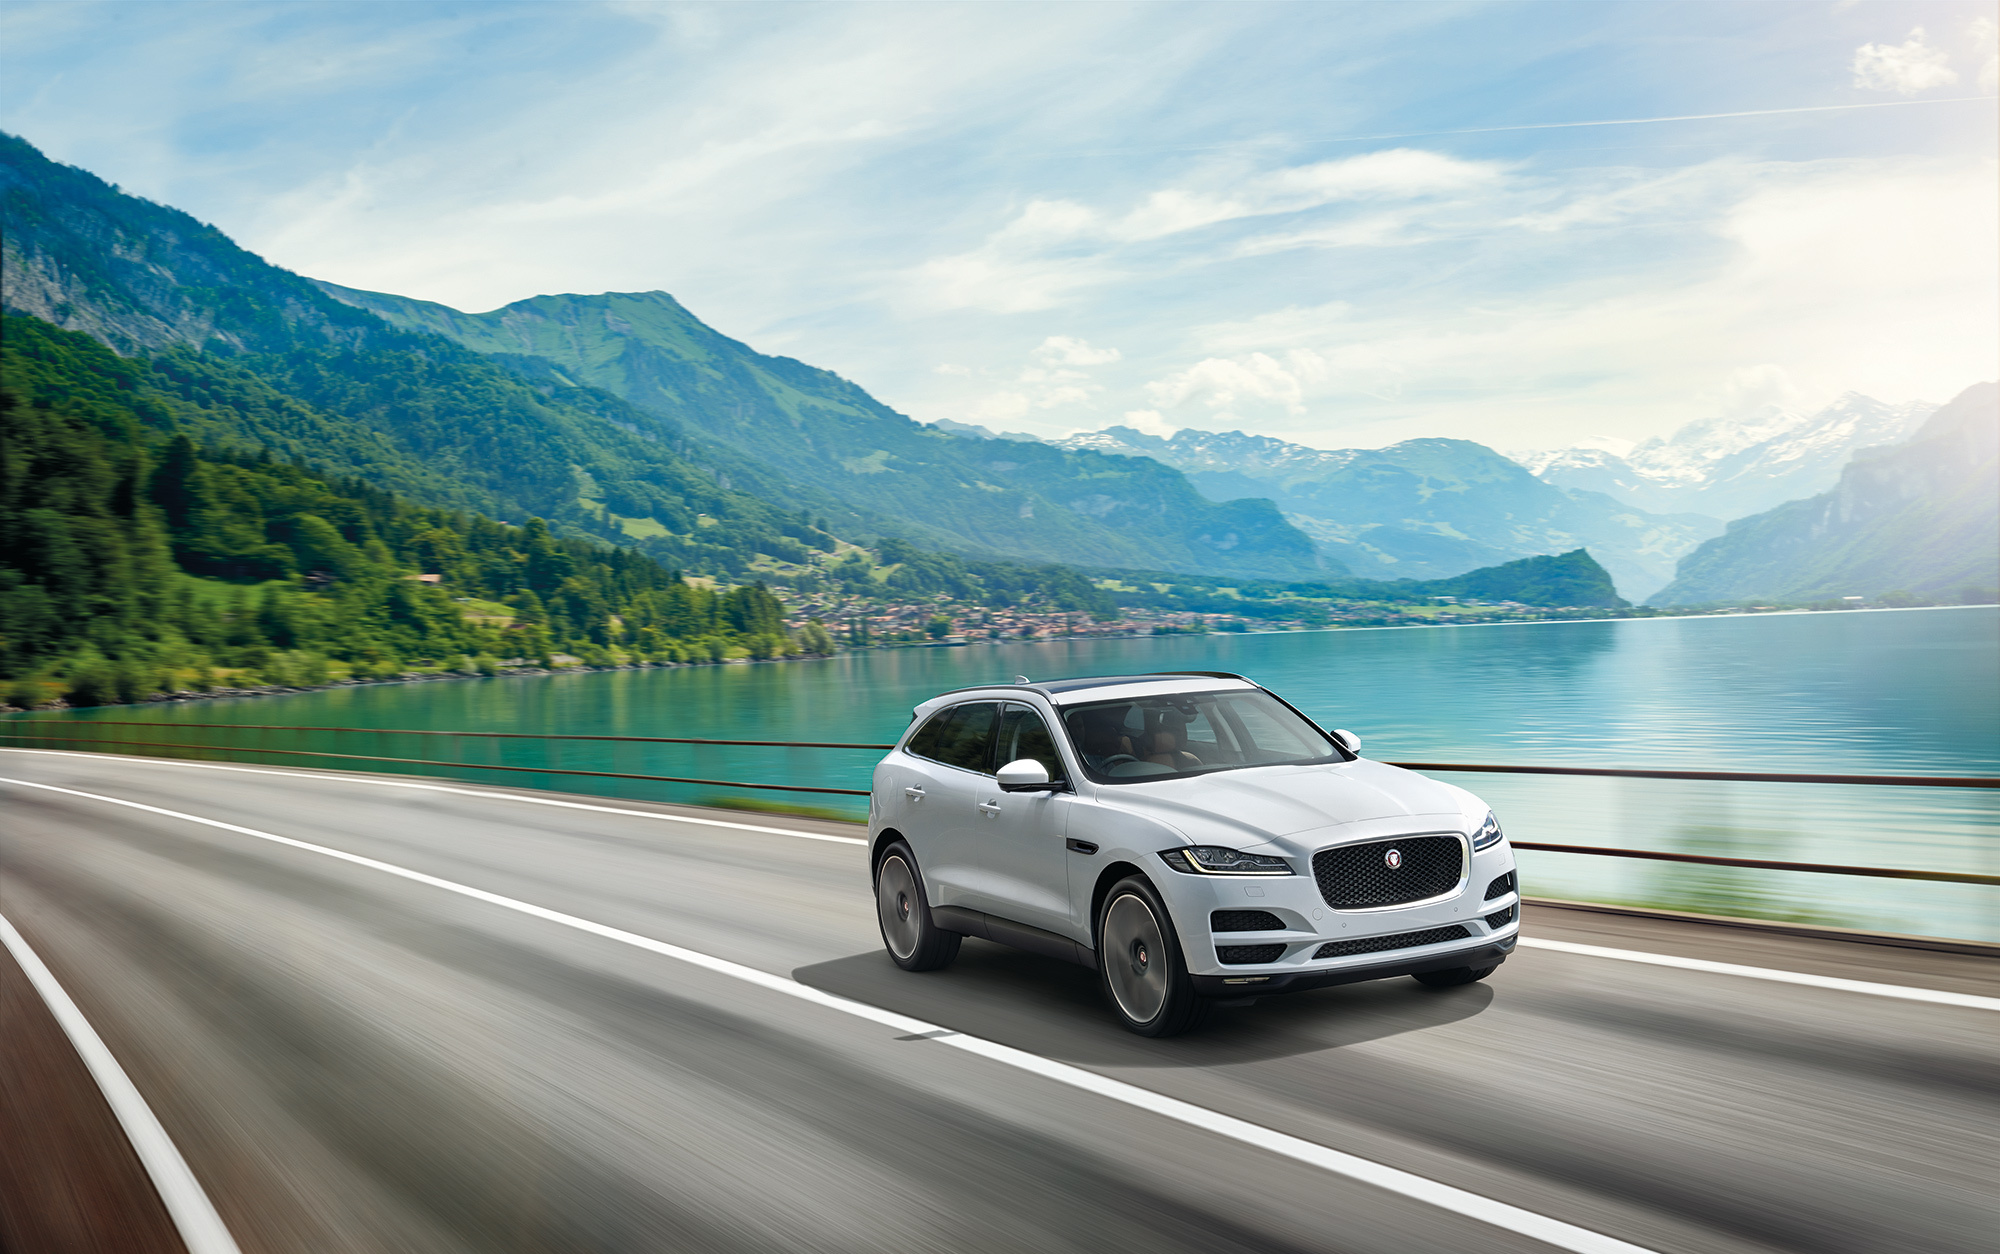 jaguar f-pace 2016 wallpapers high resolution and quality download